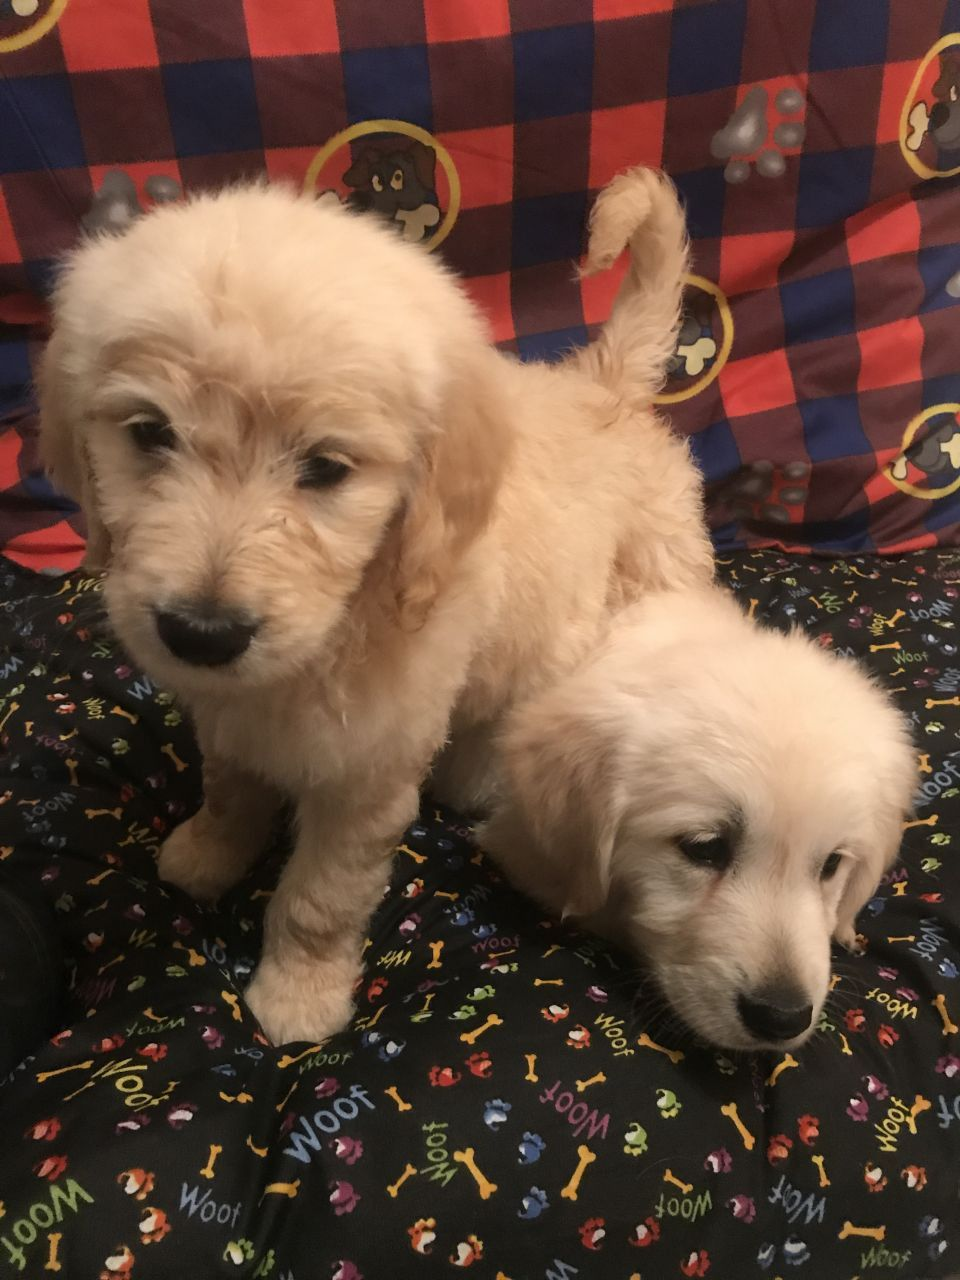 Adorable pedigree golden retriever puppies ready for new